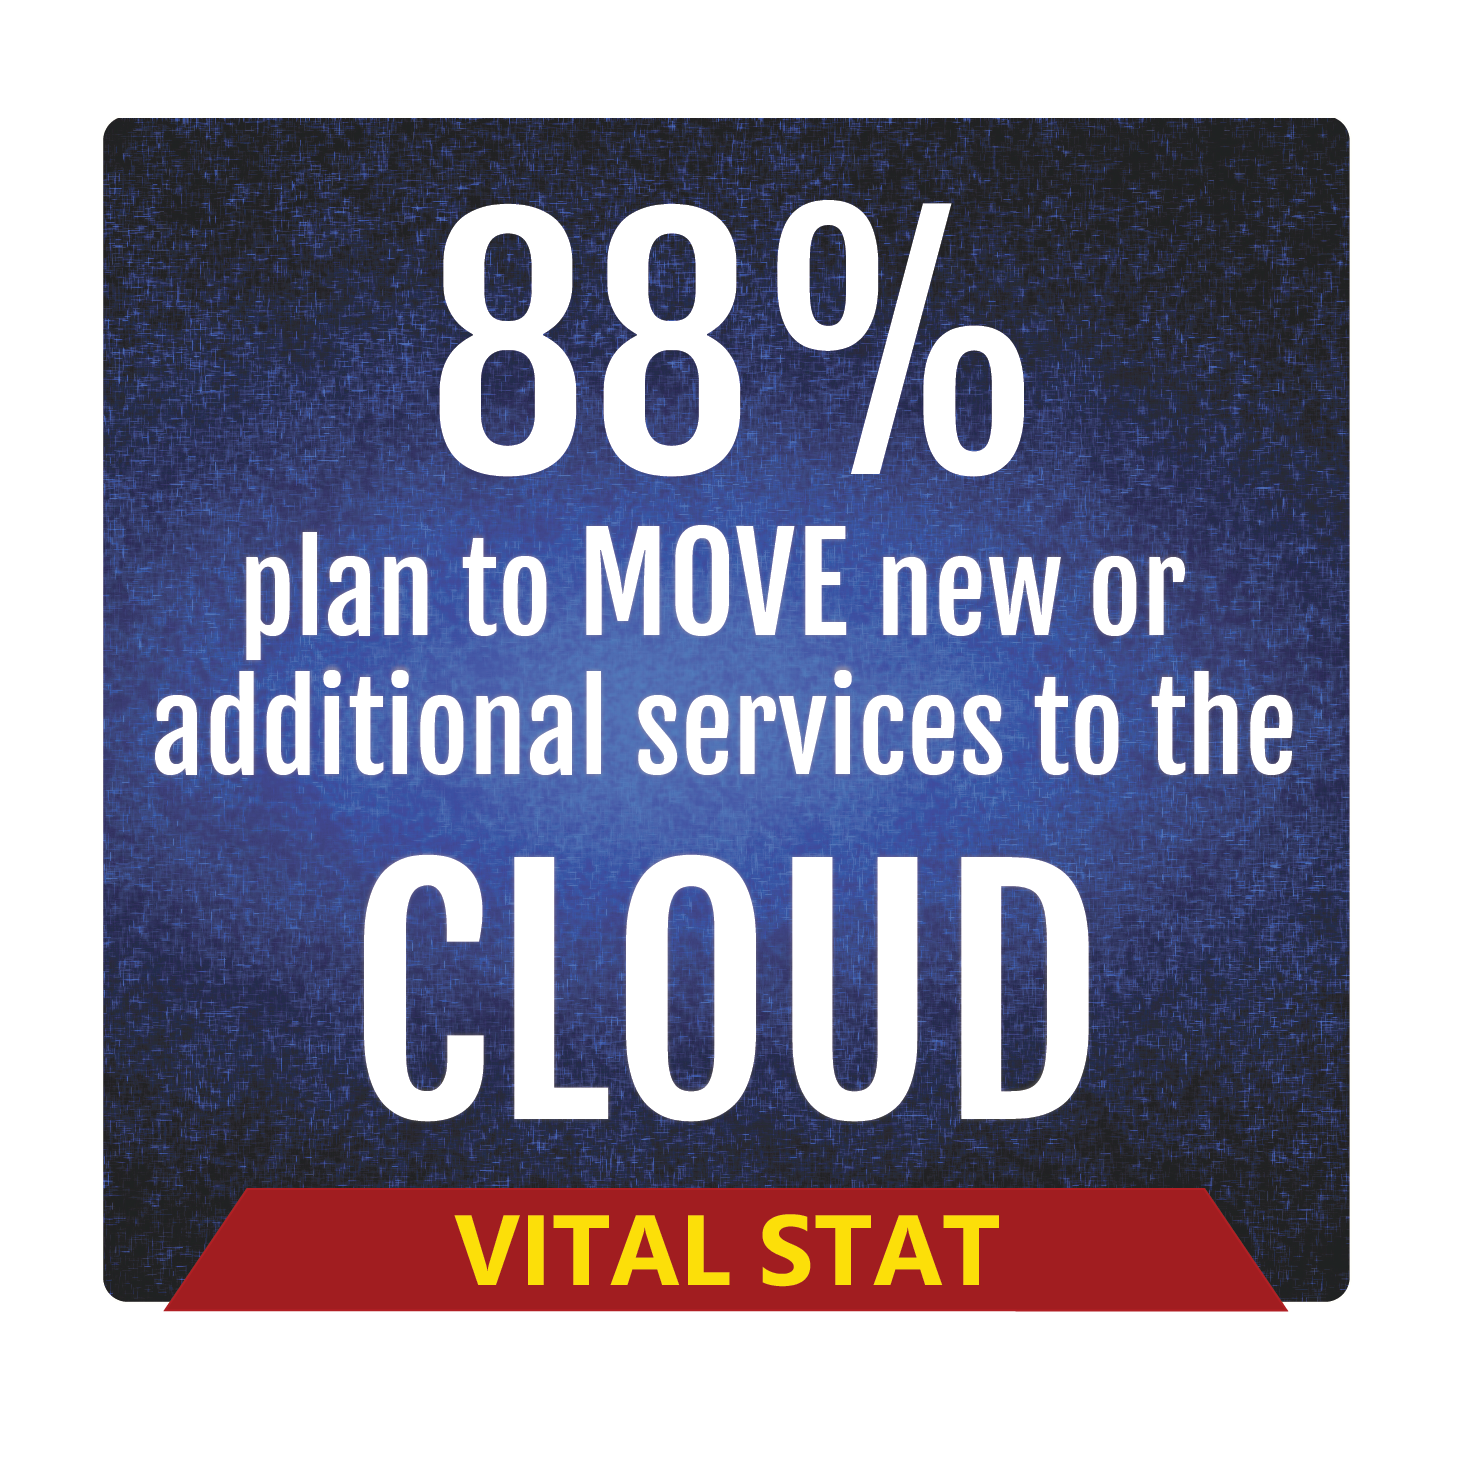 88% plan to move to the cloud